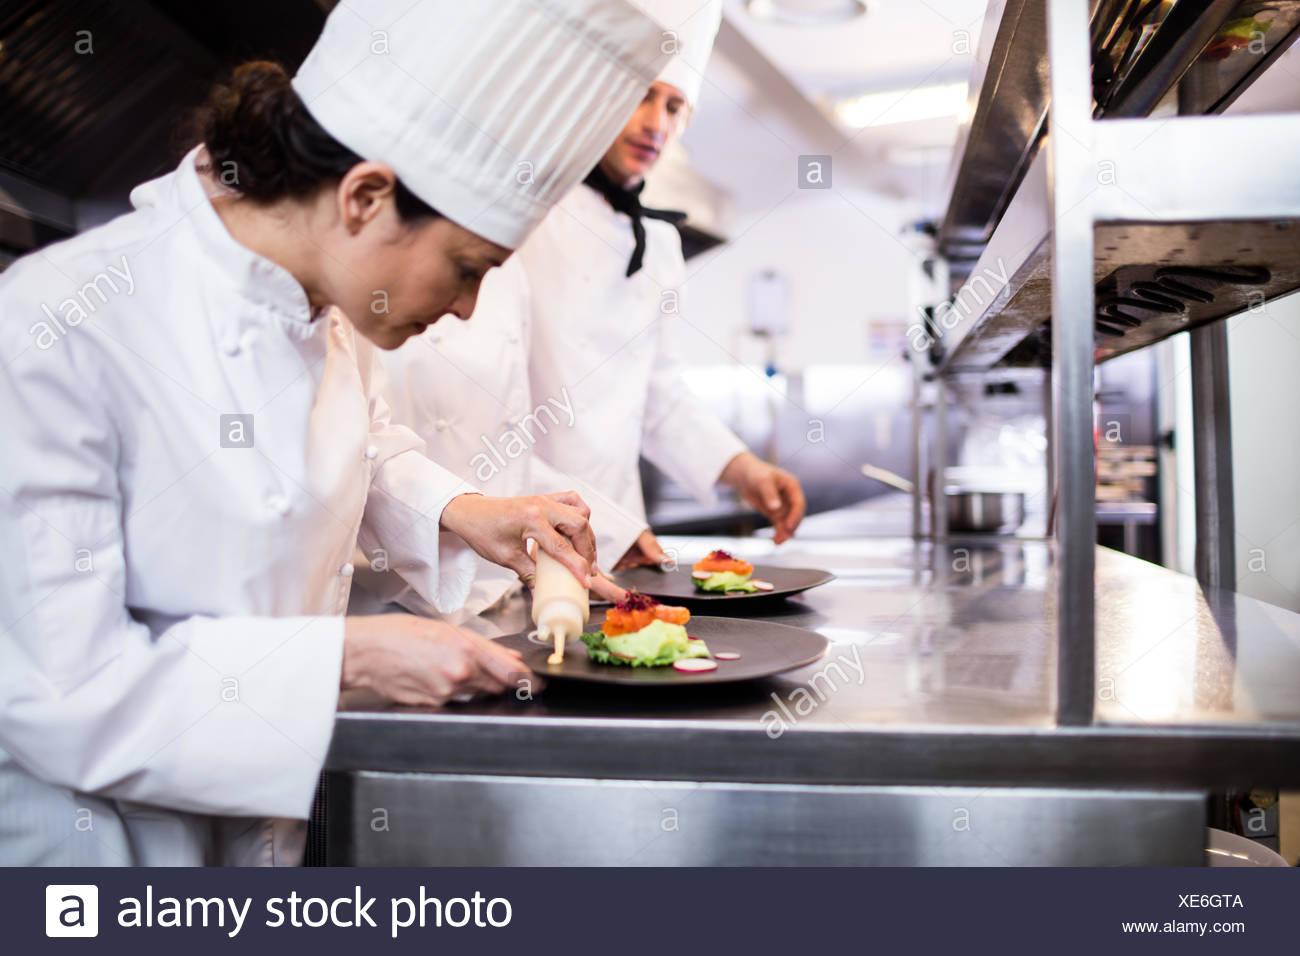 Chef decorating a food plate - Stock Image